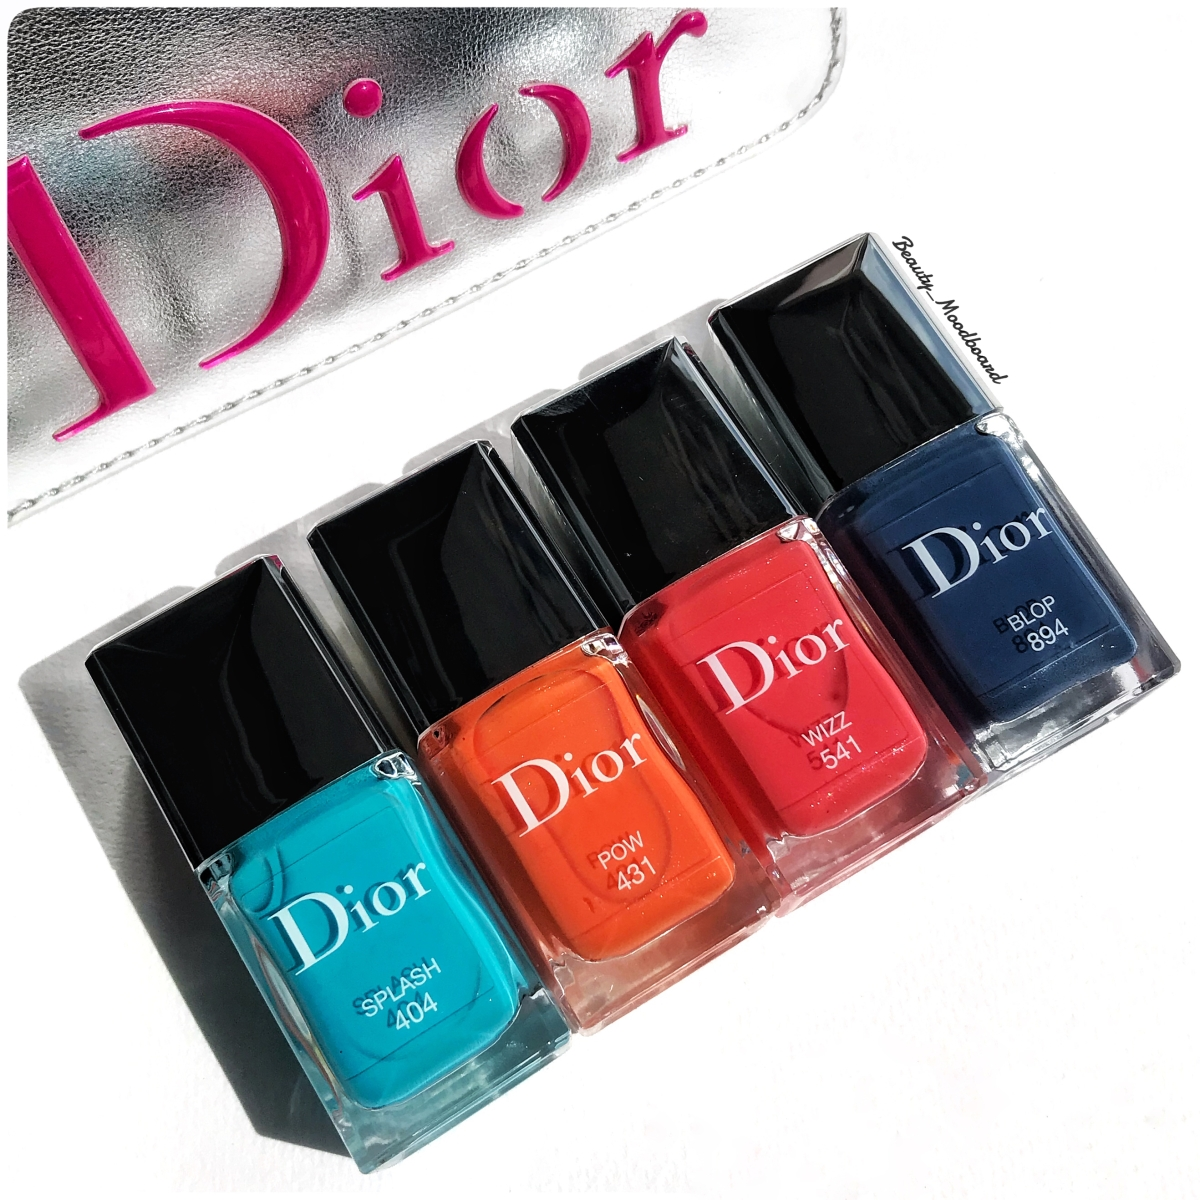 Dior Vernis Splash 404, Pow 431, Wizz 541, Blop 894 : Cool Wave Eté/Summer 2018 Collection !